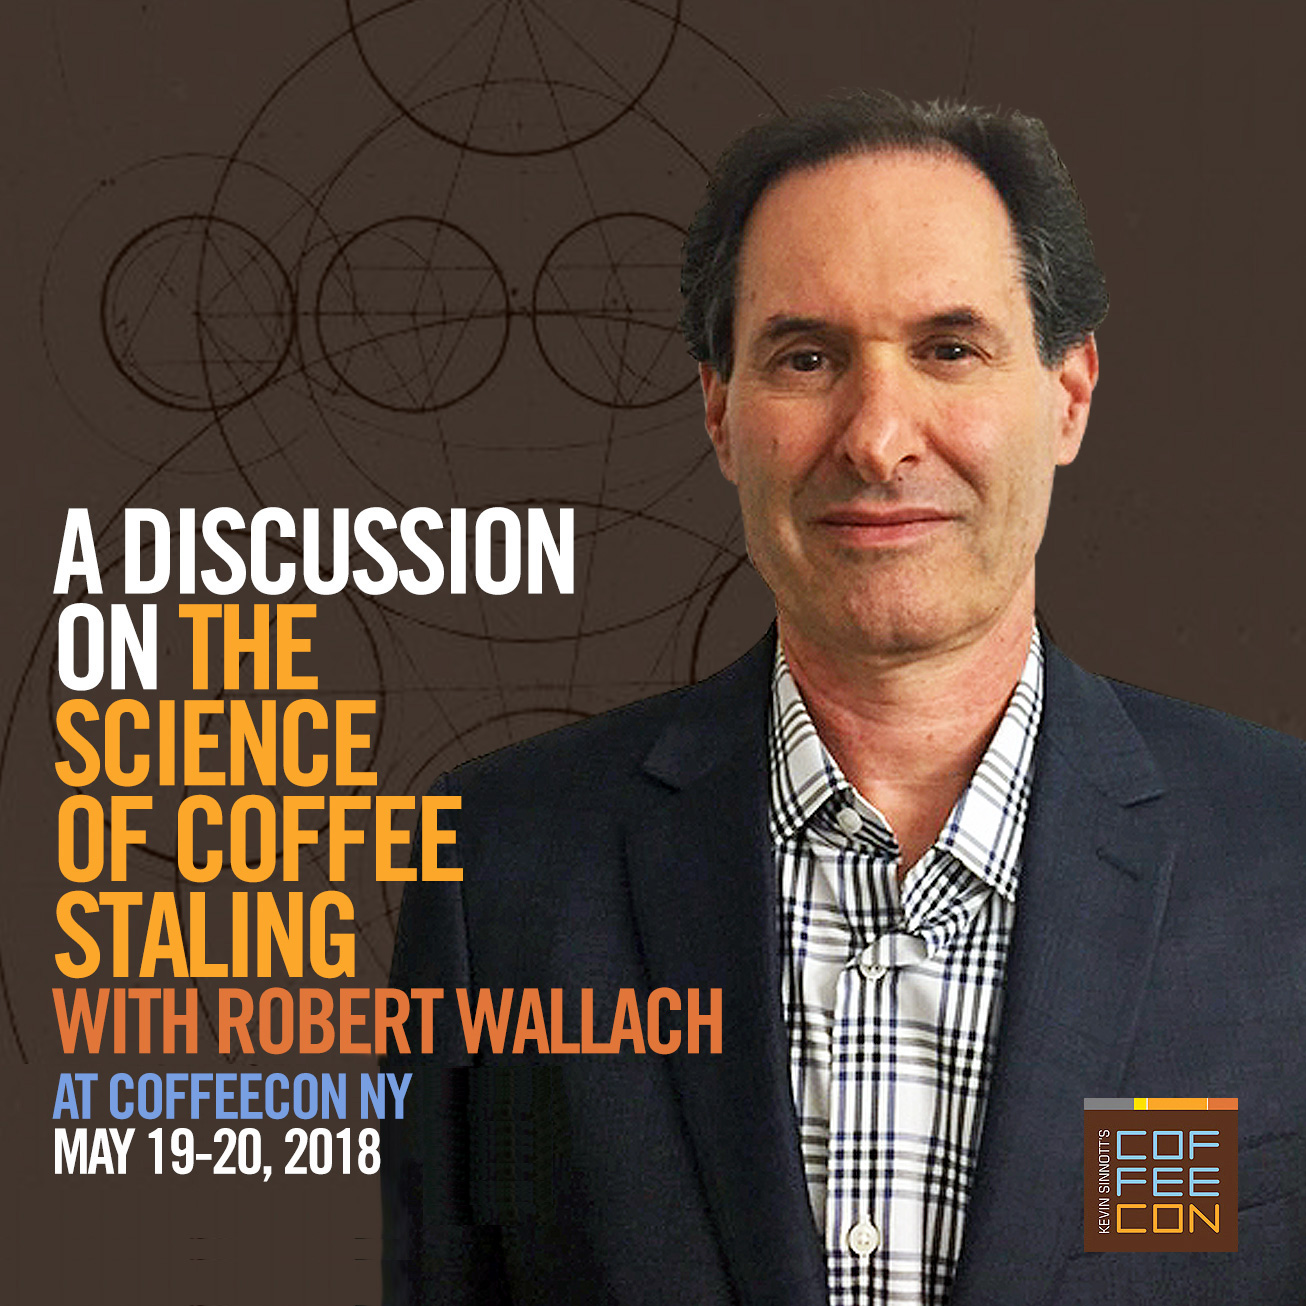 Coffee Staling with Robert Wallach